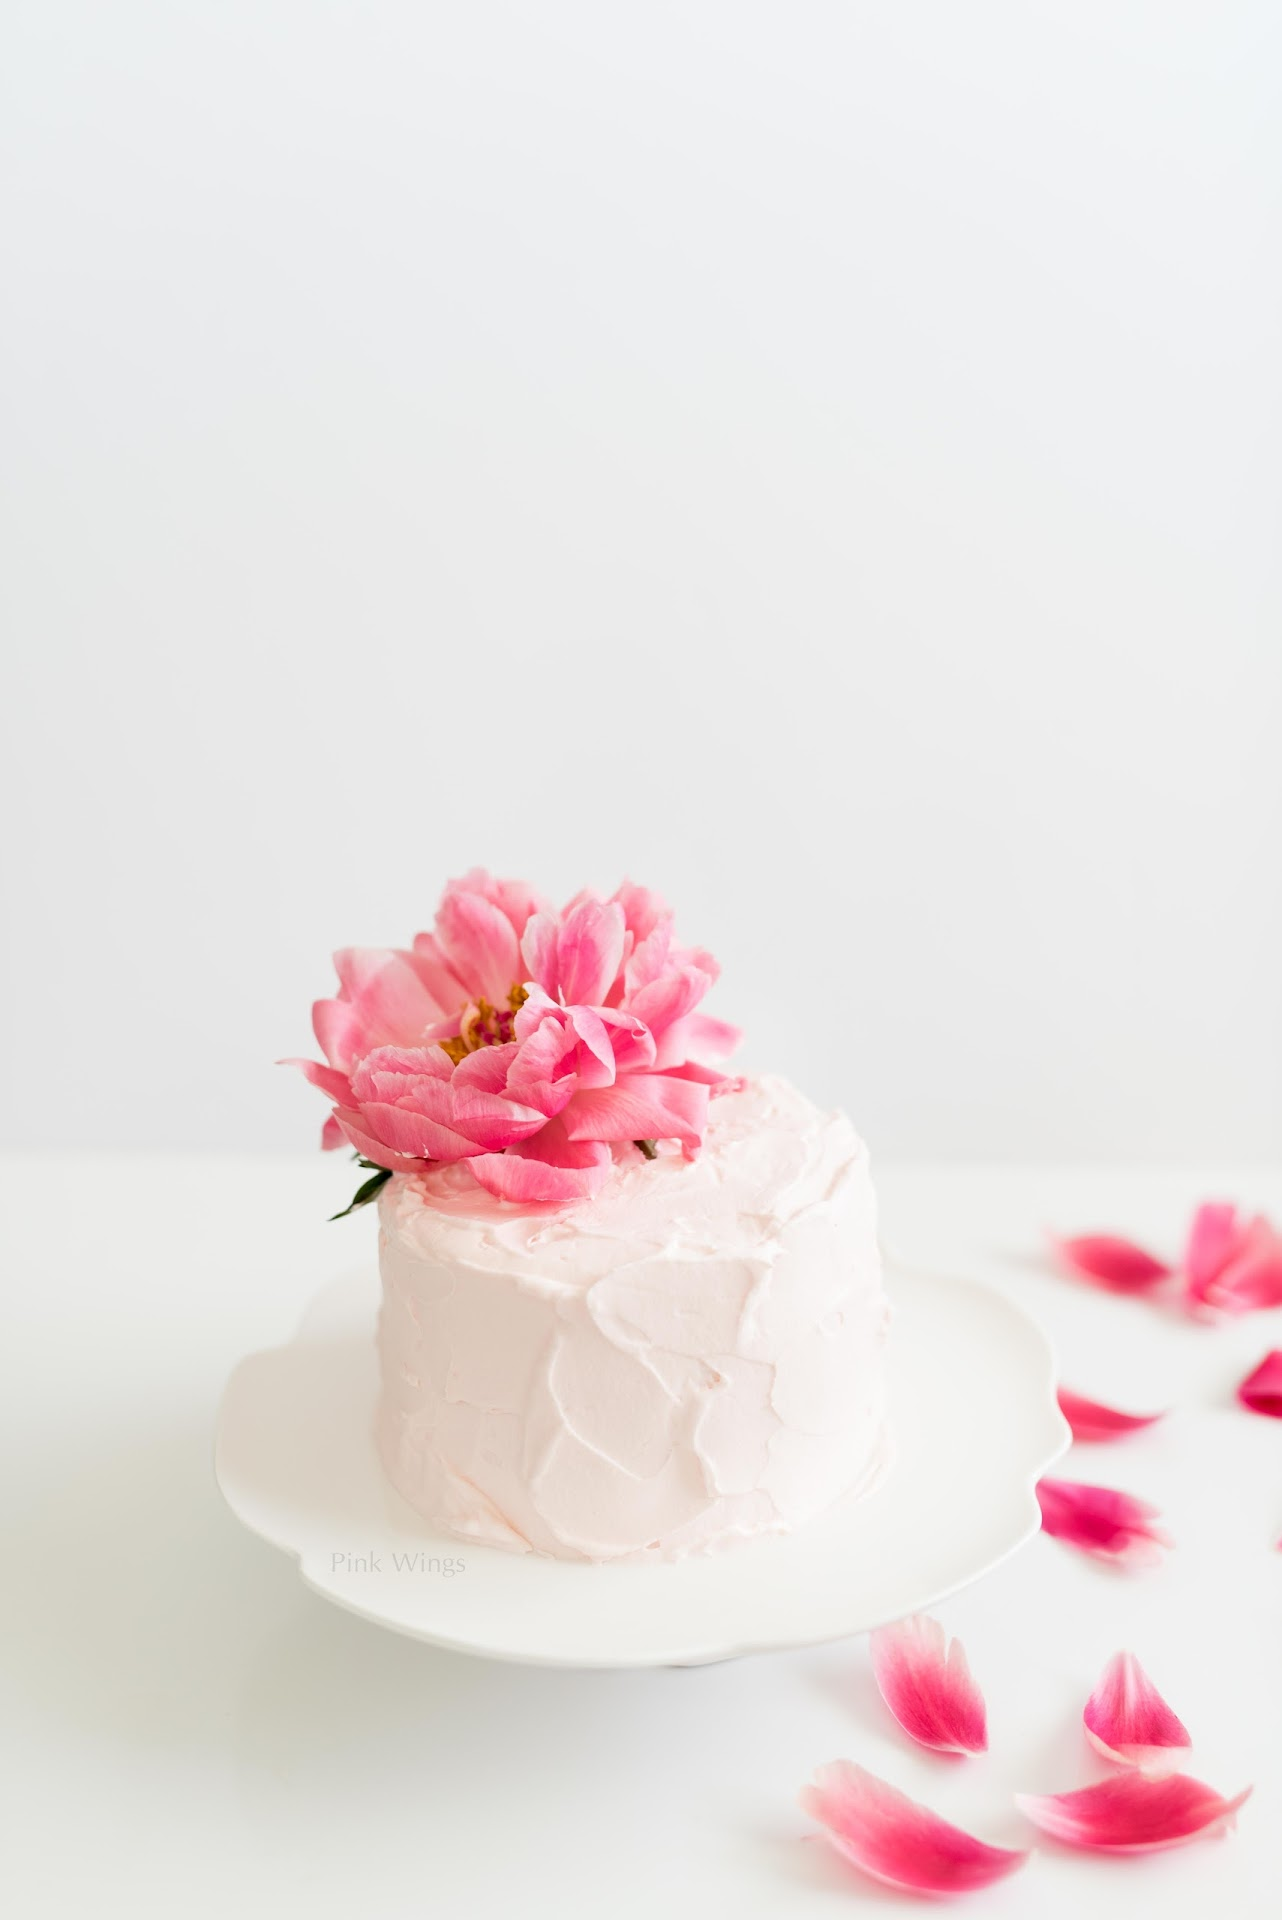 pink flower birthday cake, small wedding cake idea, mini cake recipe, pink birthday cake recipe, small smash cake, pink layered cake recipe, girl birthday party ideas, peony cake, strawberry cake, light summer cake ideas, recipe, cream cheese whipped cream, marscapone